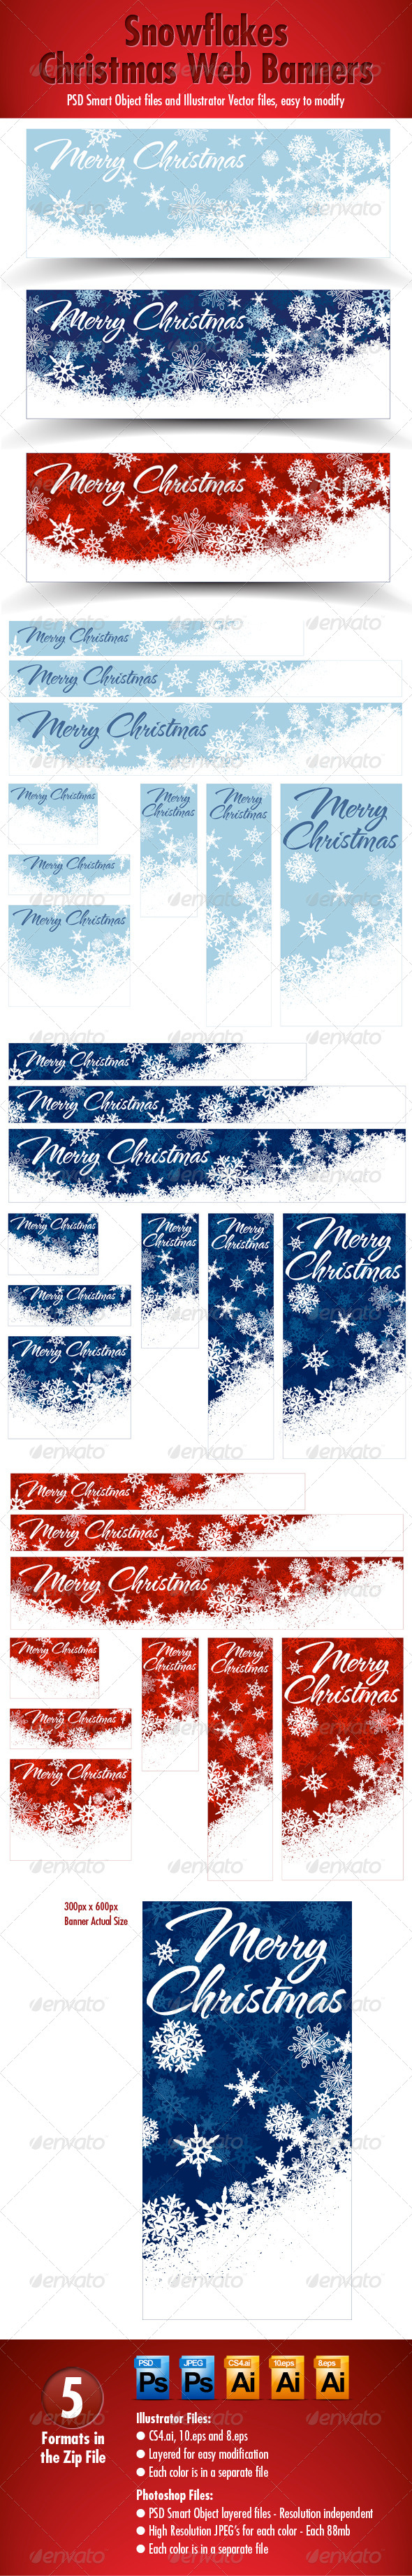 Snowflakes Christmas Web Banners - Three Colors - Web Elements Vectors